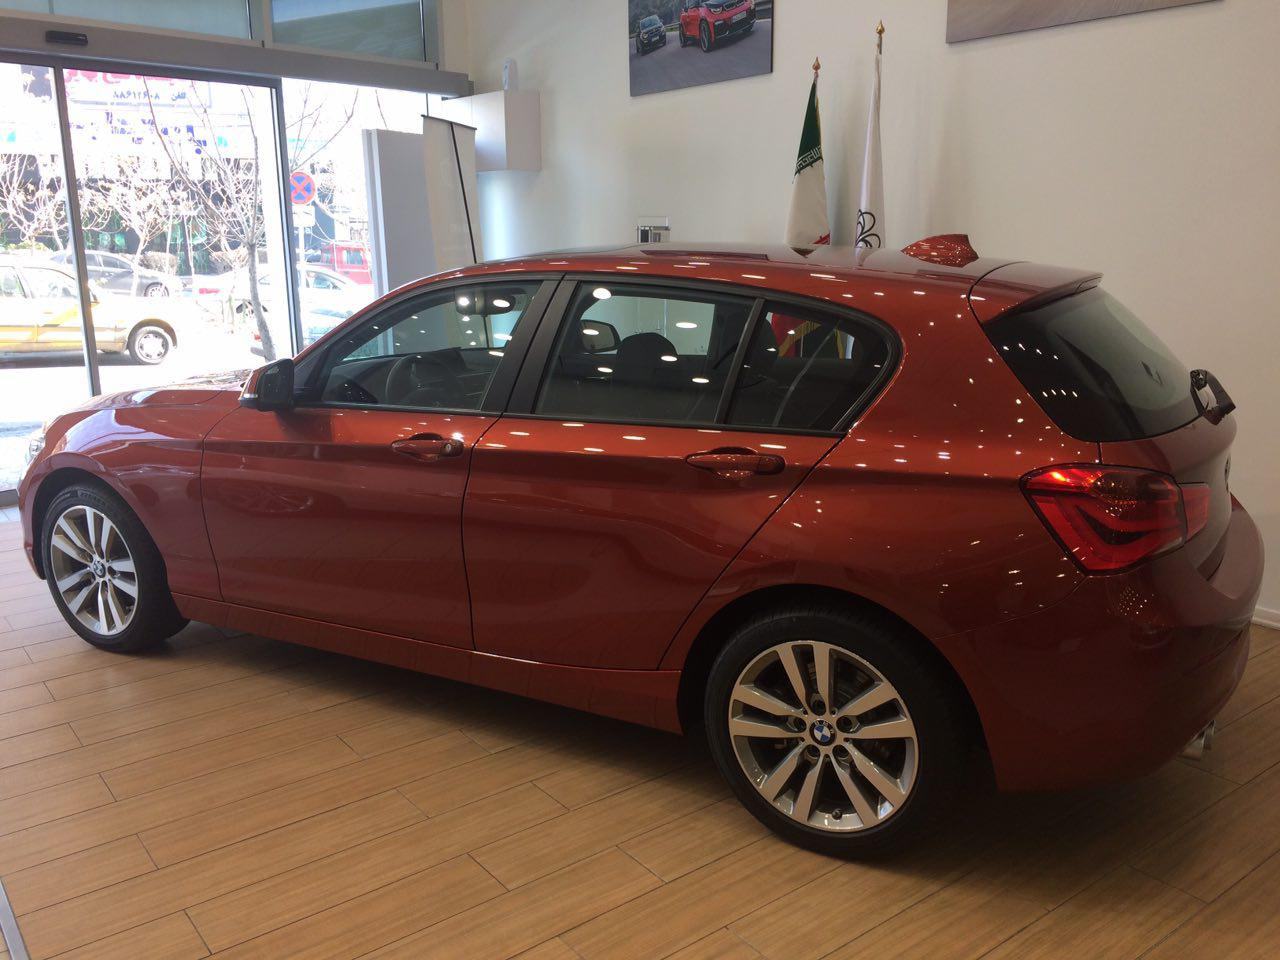 5doors , 120i , 2018 ,Hatchback